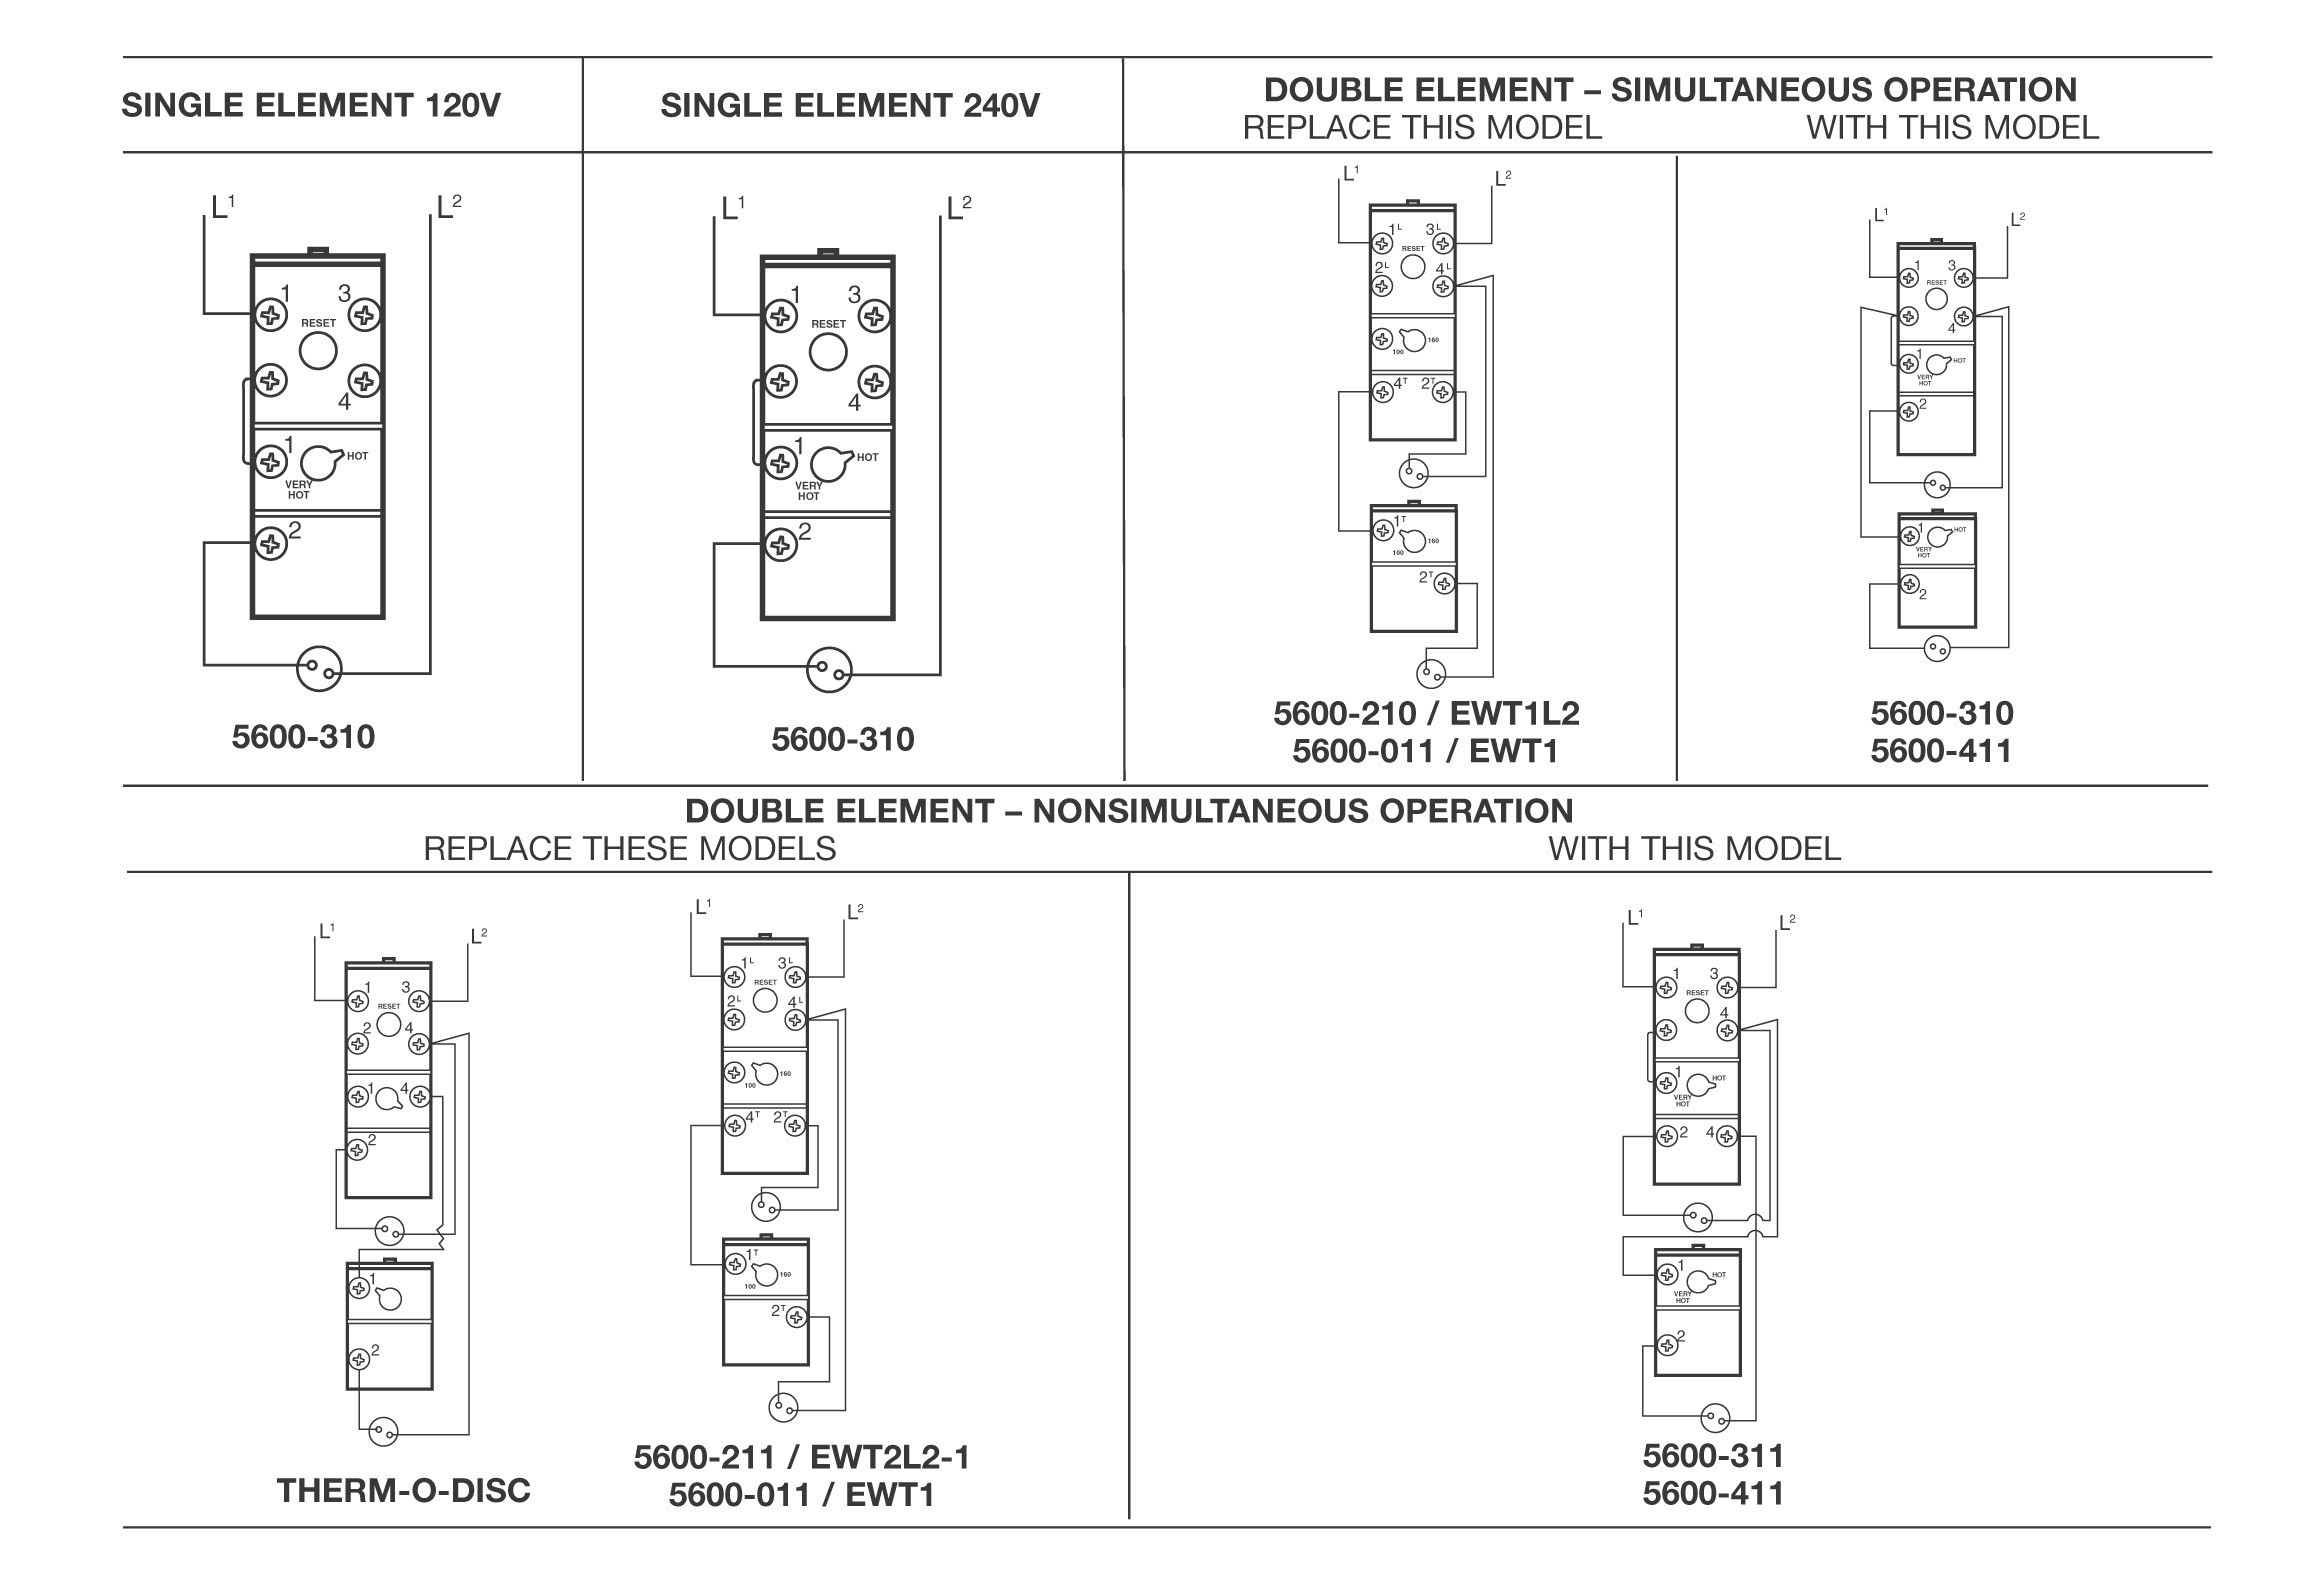 electric baseboard wiring diagram Collection-Wiring Diagram For Electric Baseboard Heater Fresh Wiring Diagram 220v Baseboard Heater Inspirationa Electric Baseboard 12-b